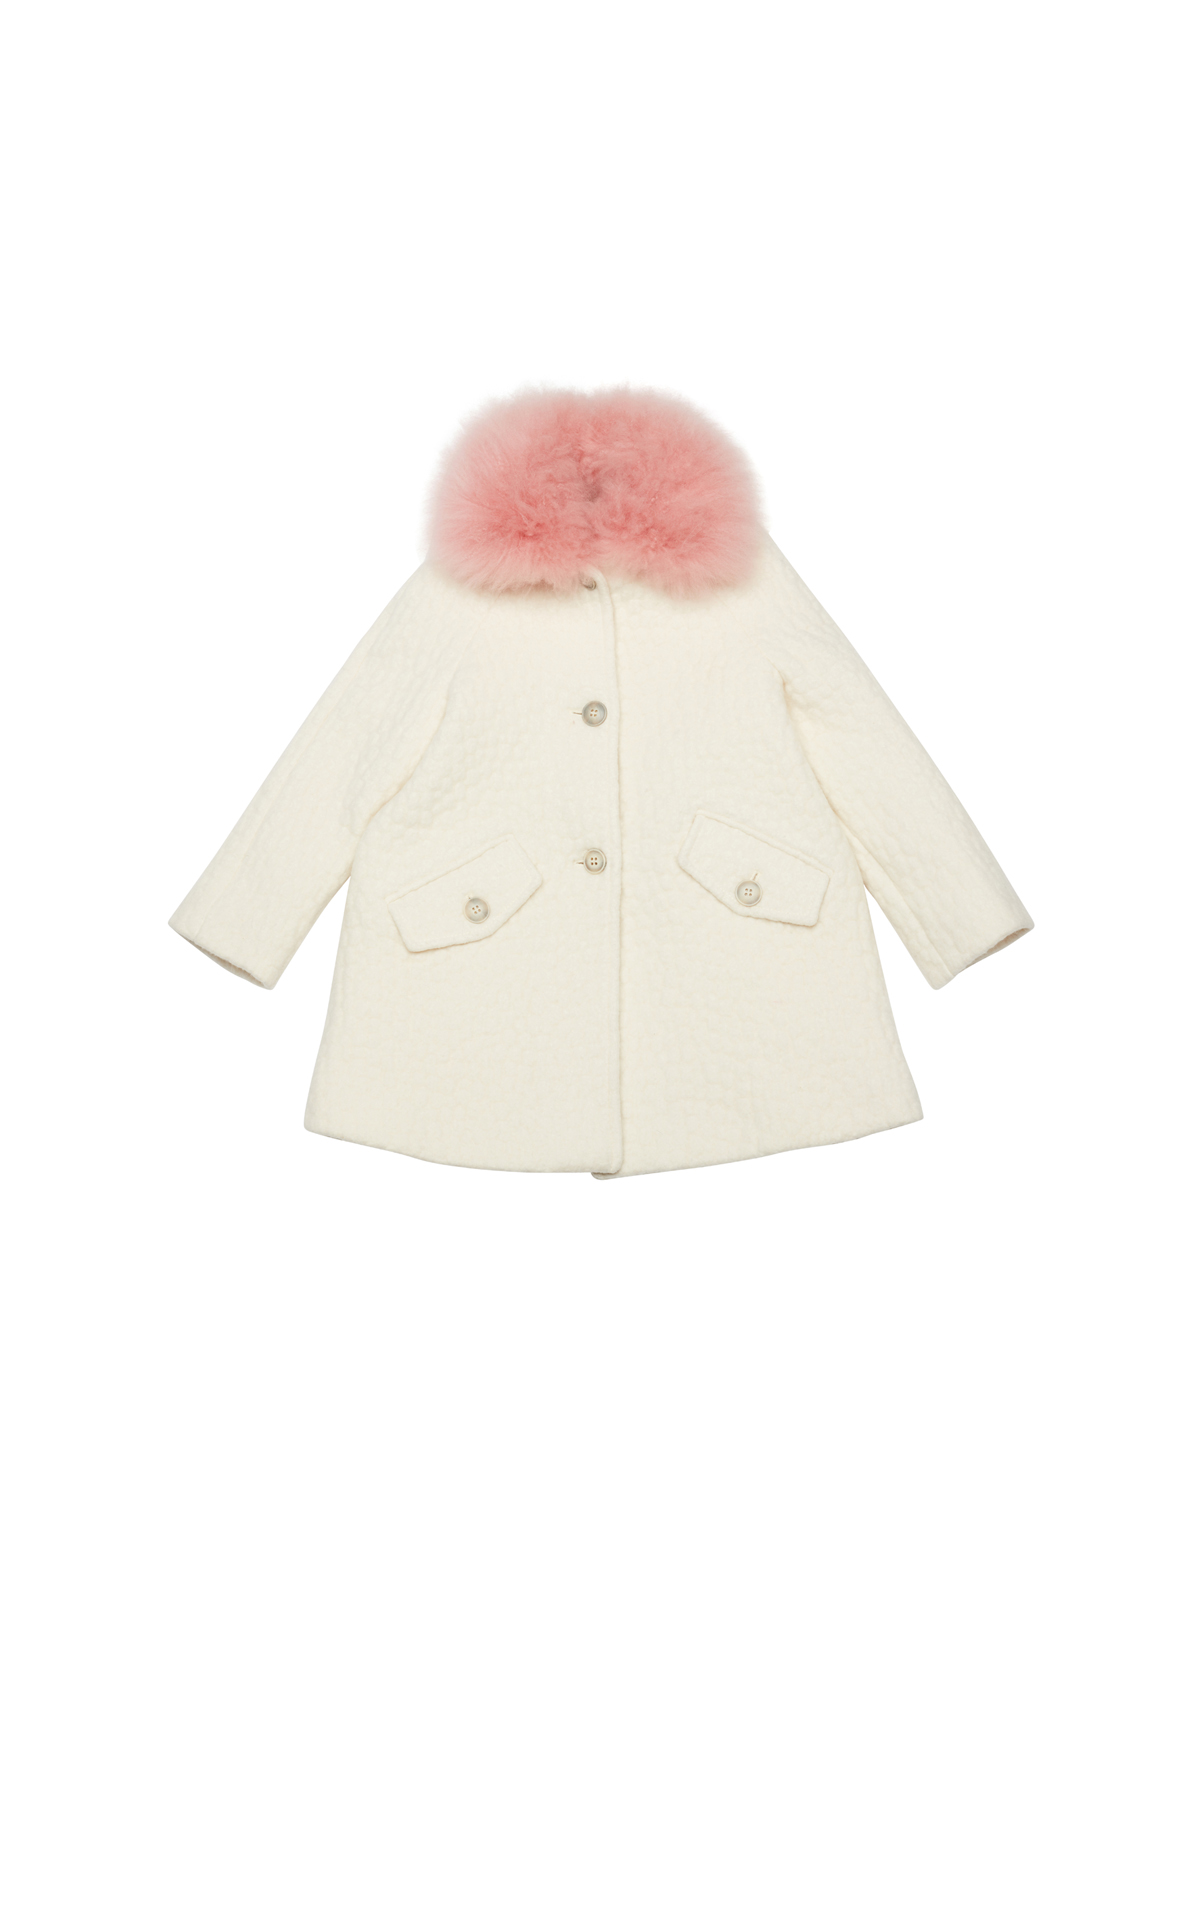 Bonpoint  White coat from Bicester Village